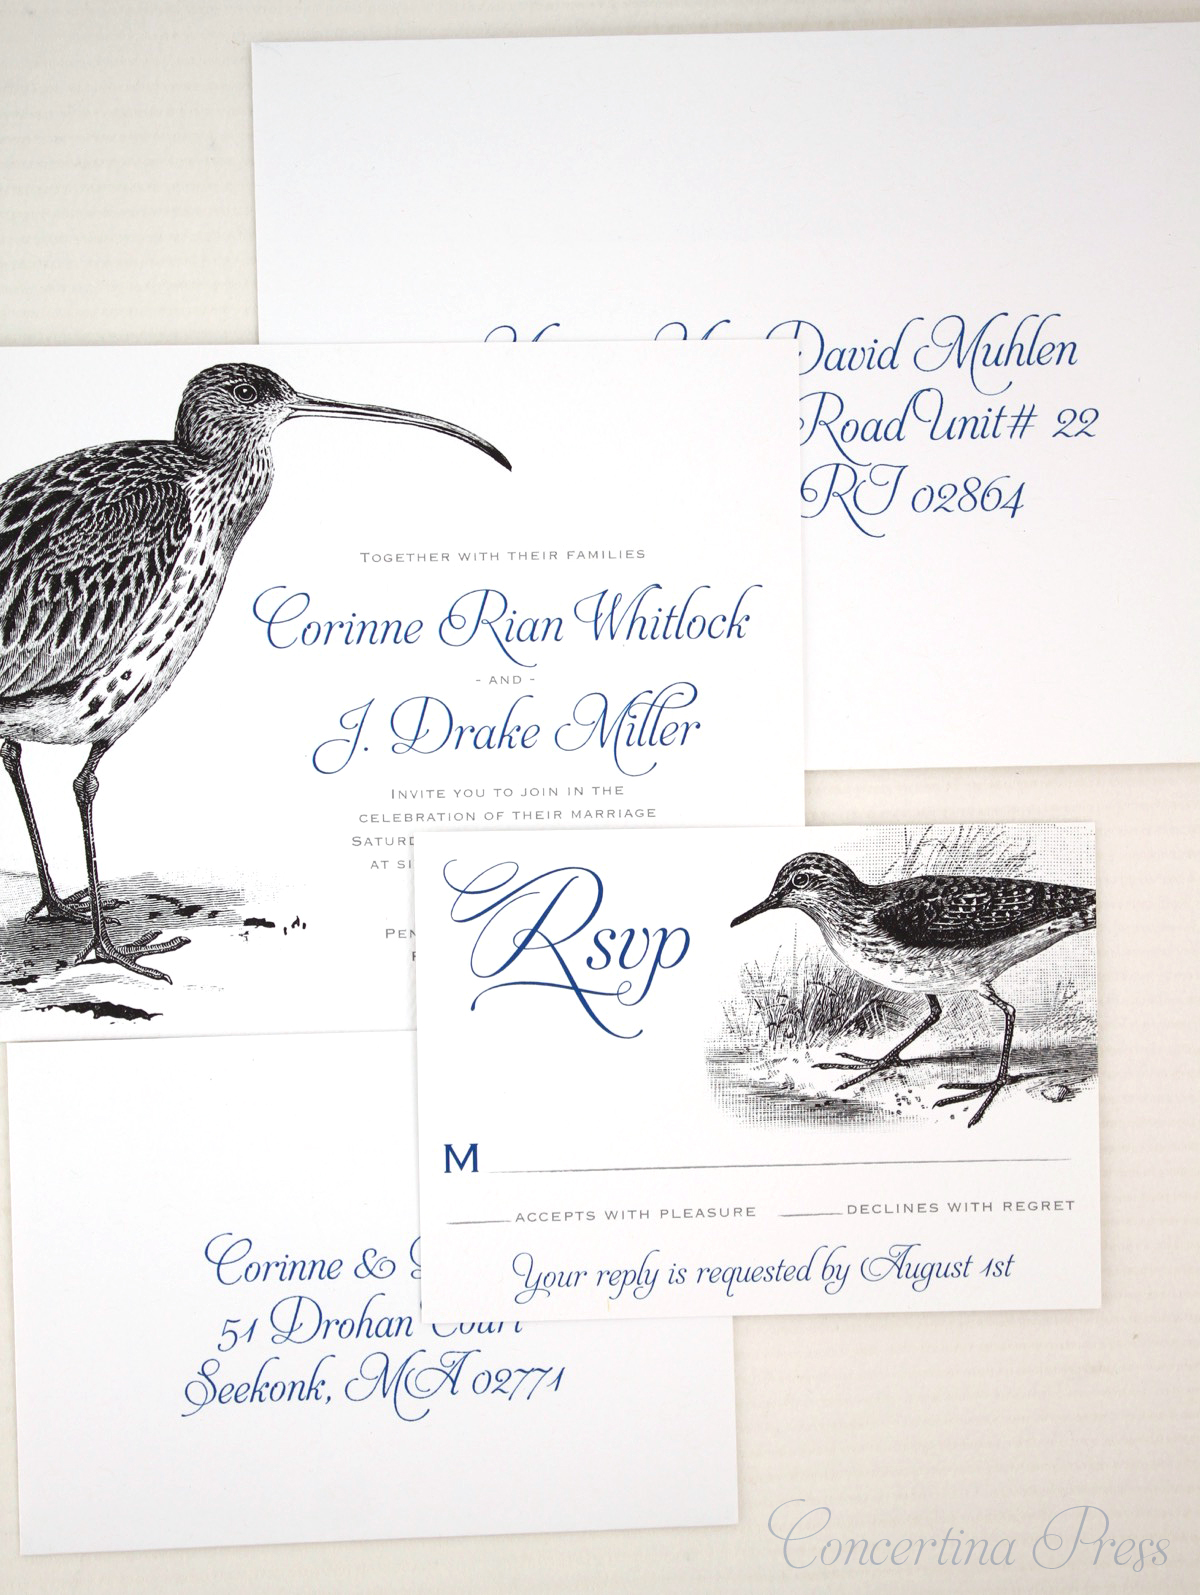 Curlew and Sandpiper Wedding Invitations for Lovebirds who LOVE birds - with addressing - from Concertina Press